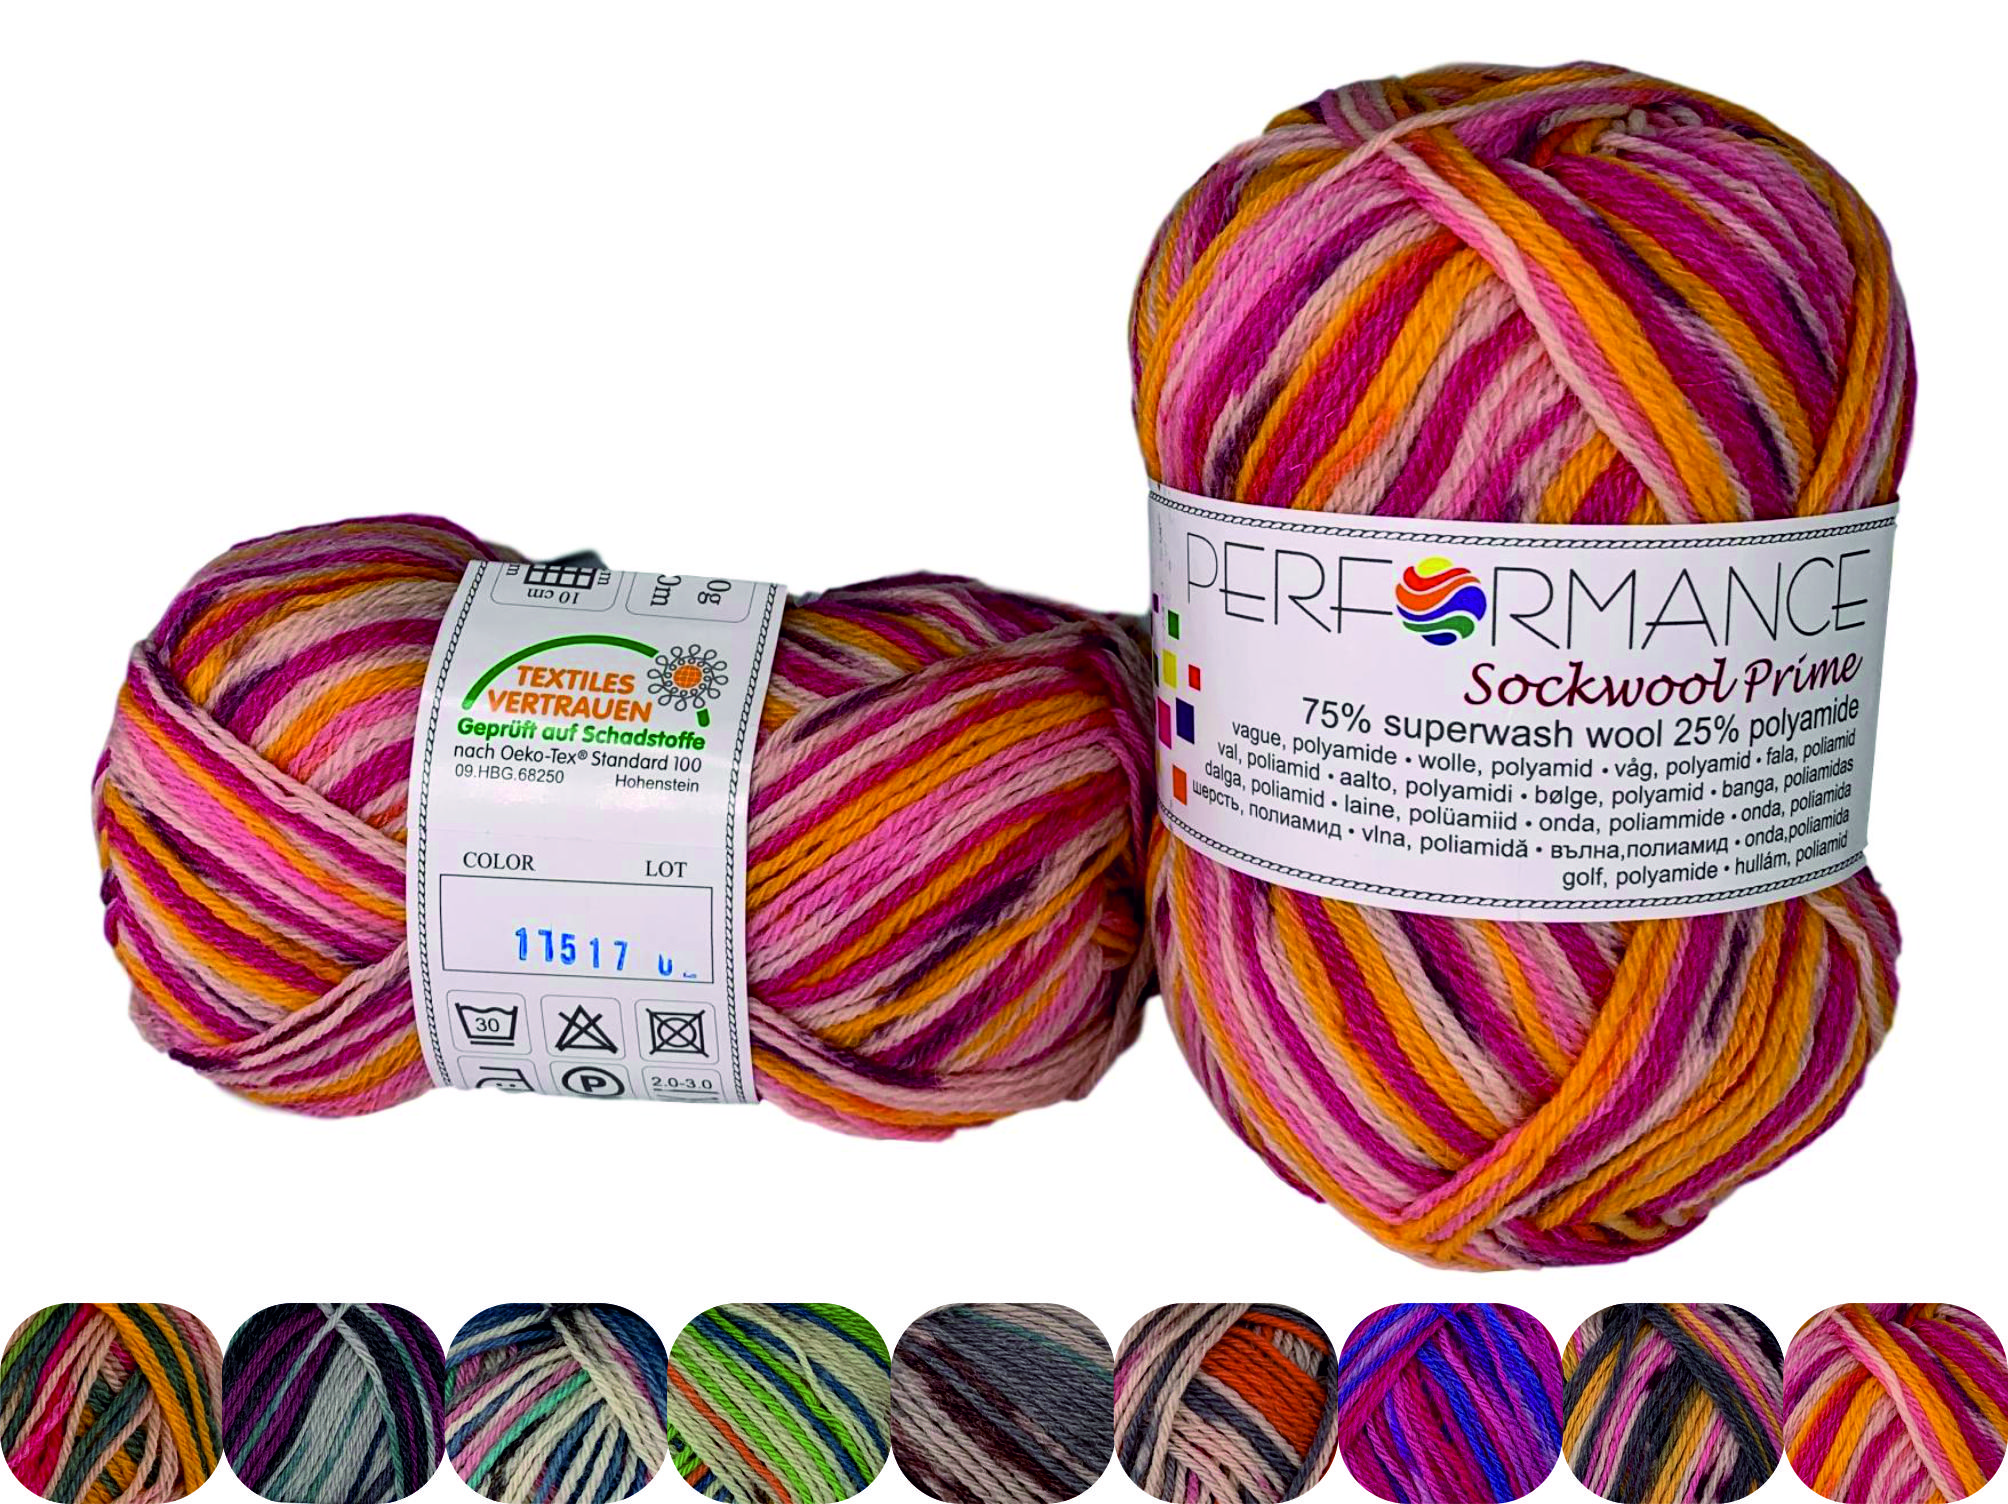 Garn Sockwool Prime Multi  - 75% Superwash Wolle, 25% Polyamide - NM 17/4 - 200 m pro 50 g - 17517